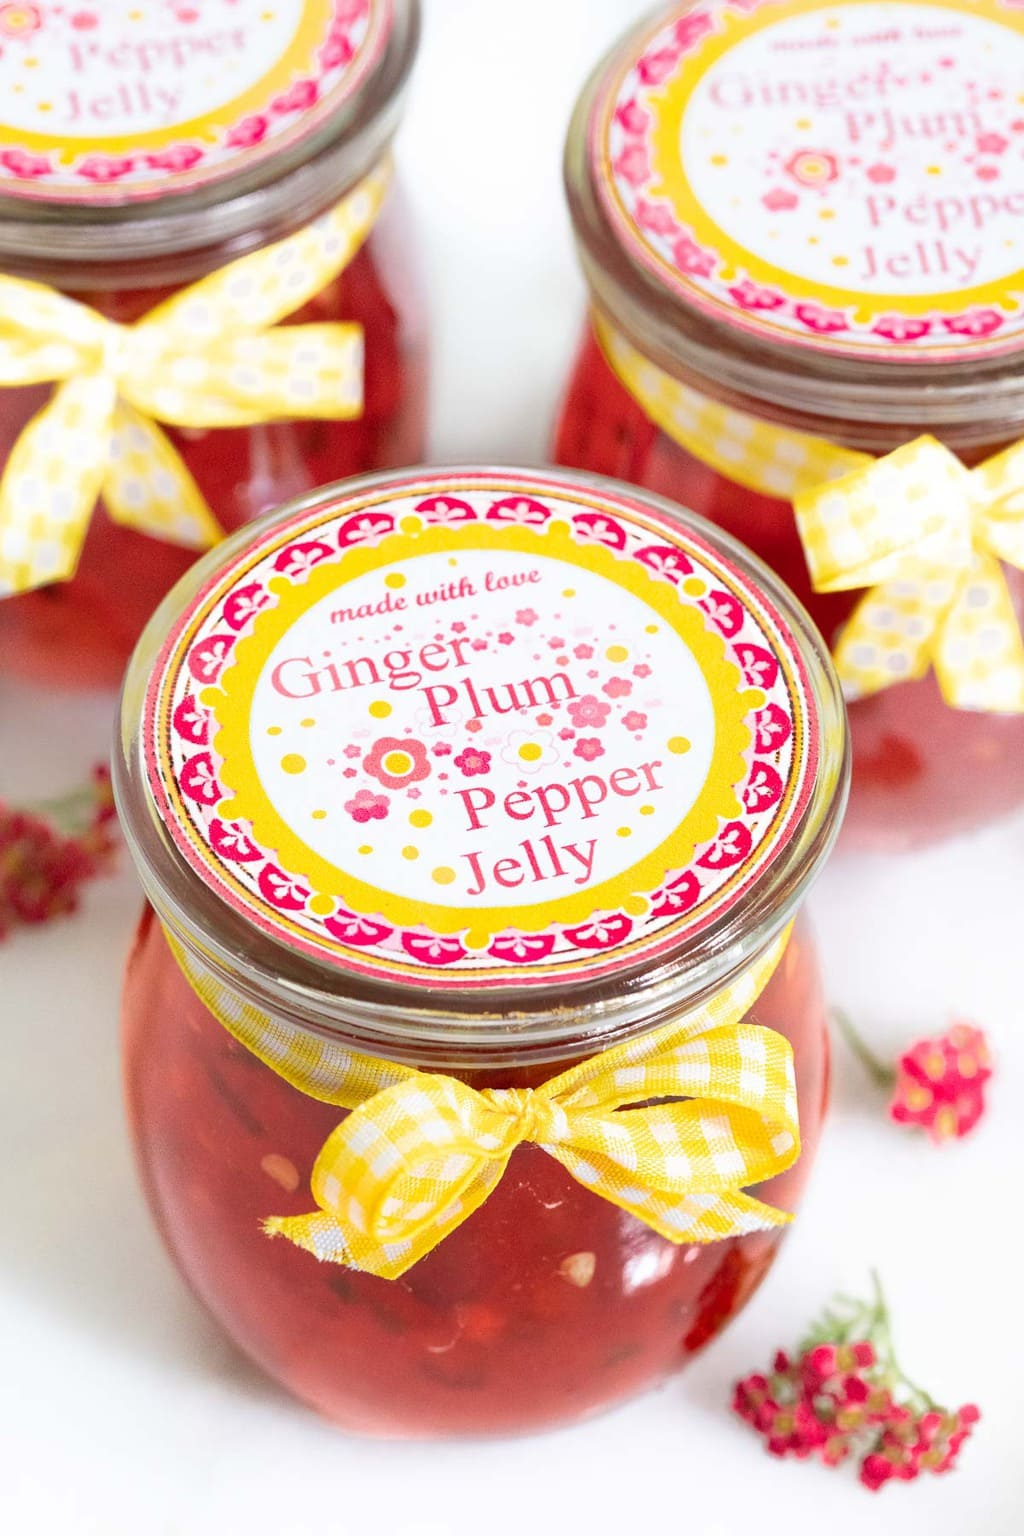 Vertical closeup photo of Plum Ginger Pepper Jelly in glass Weck jars with printed labels and yellow ribbons.